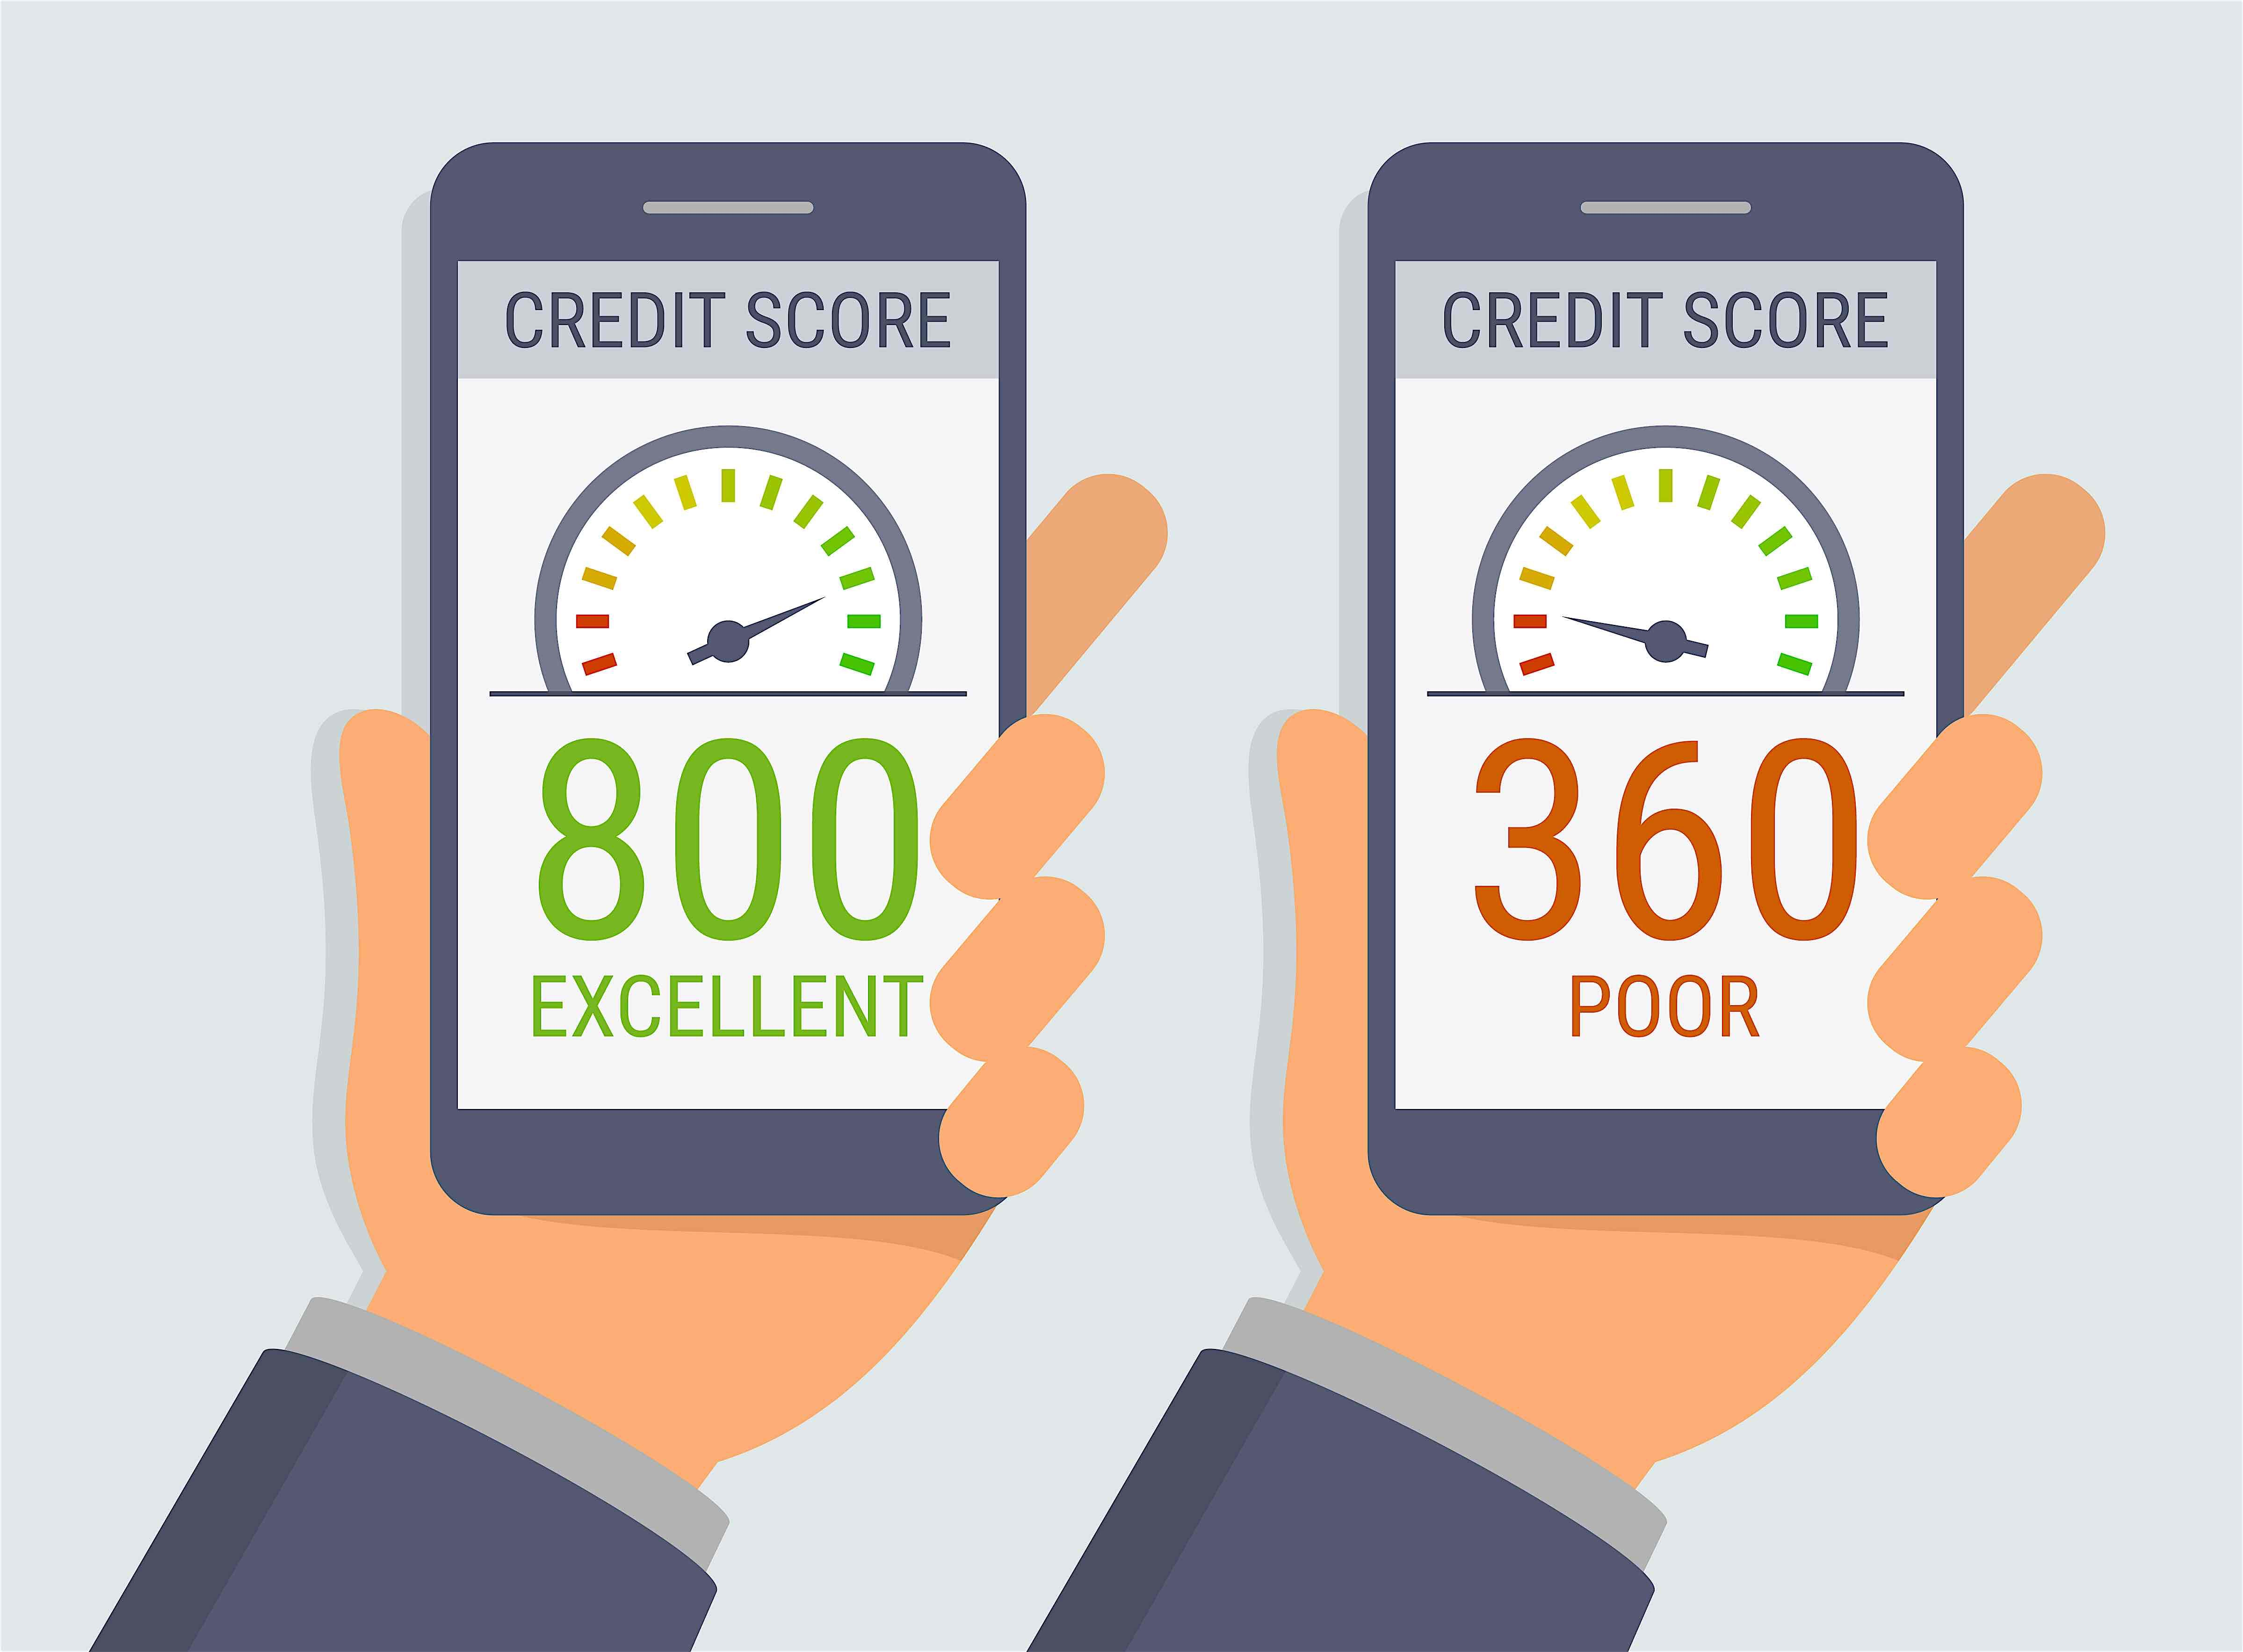 3 Ways to Improve Your Credit Score - The Finance Genie